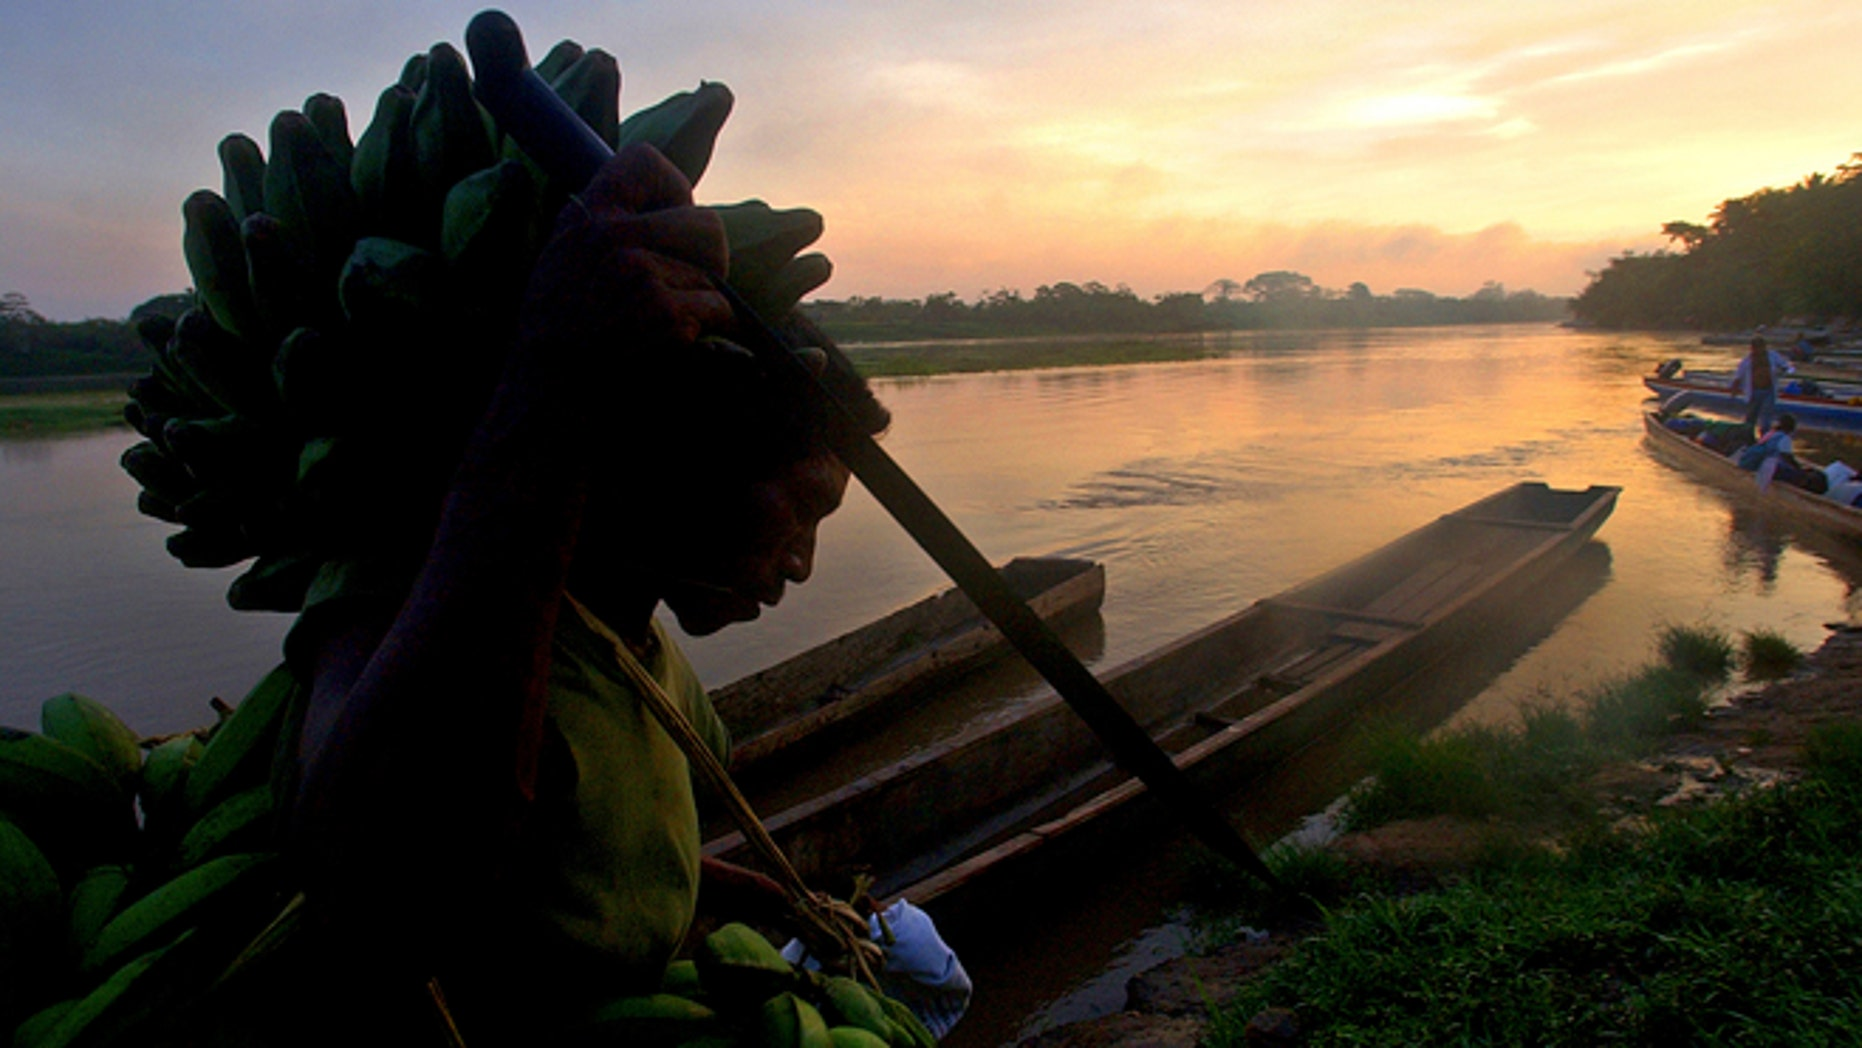 A Miskito Indian carries bananas on his head on the banks of the Coco river near the town of Waspan, Nicaragua, on the border with Honduras.